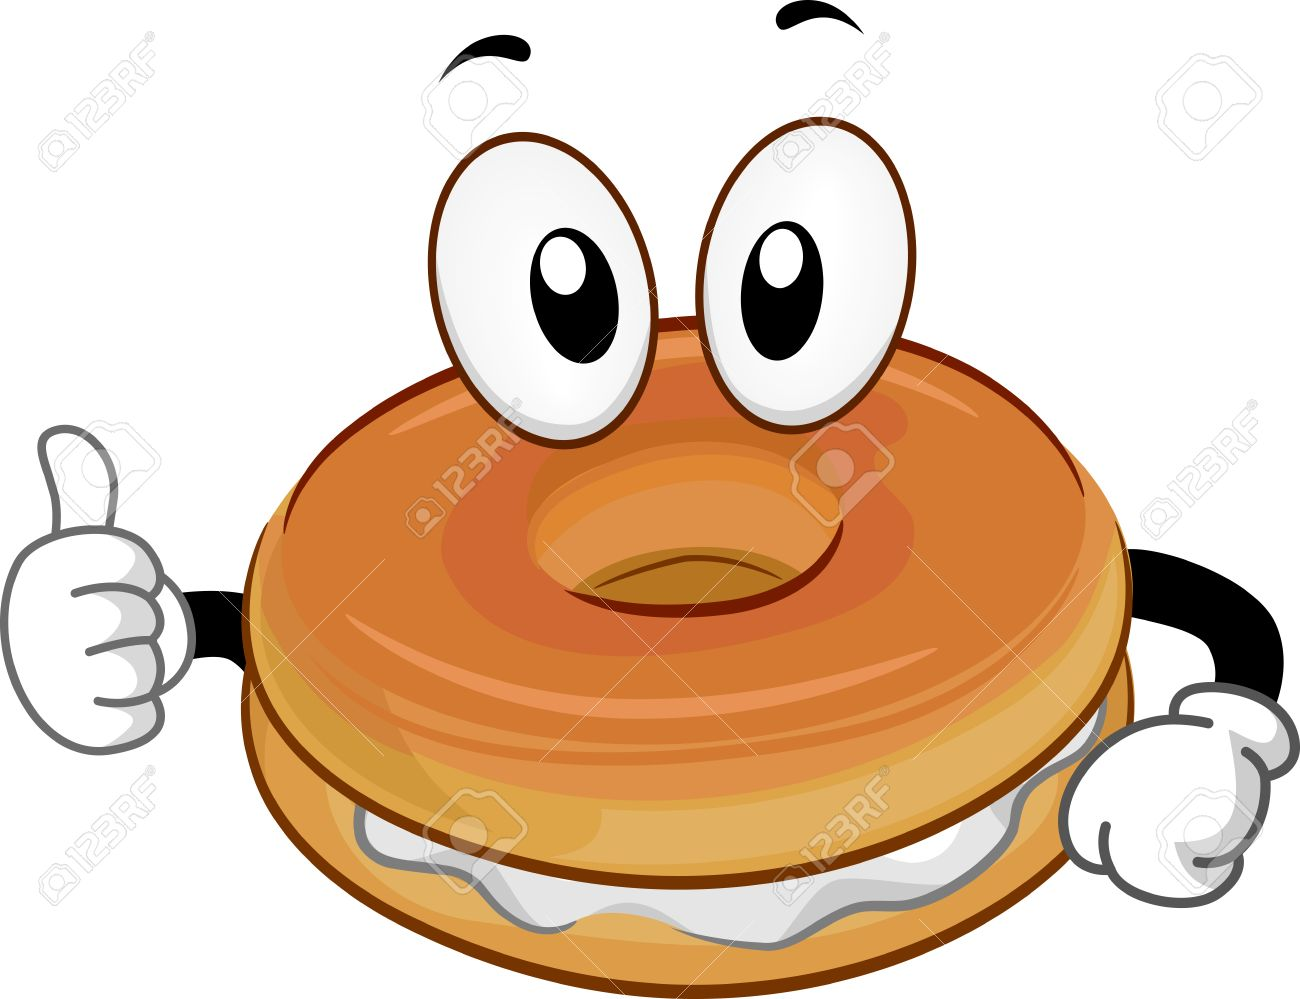 mascot illustration of a bagel giving a thumbs up stock photo rh 123rf com Bagel Bar Bagel Cartoon Clip Art